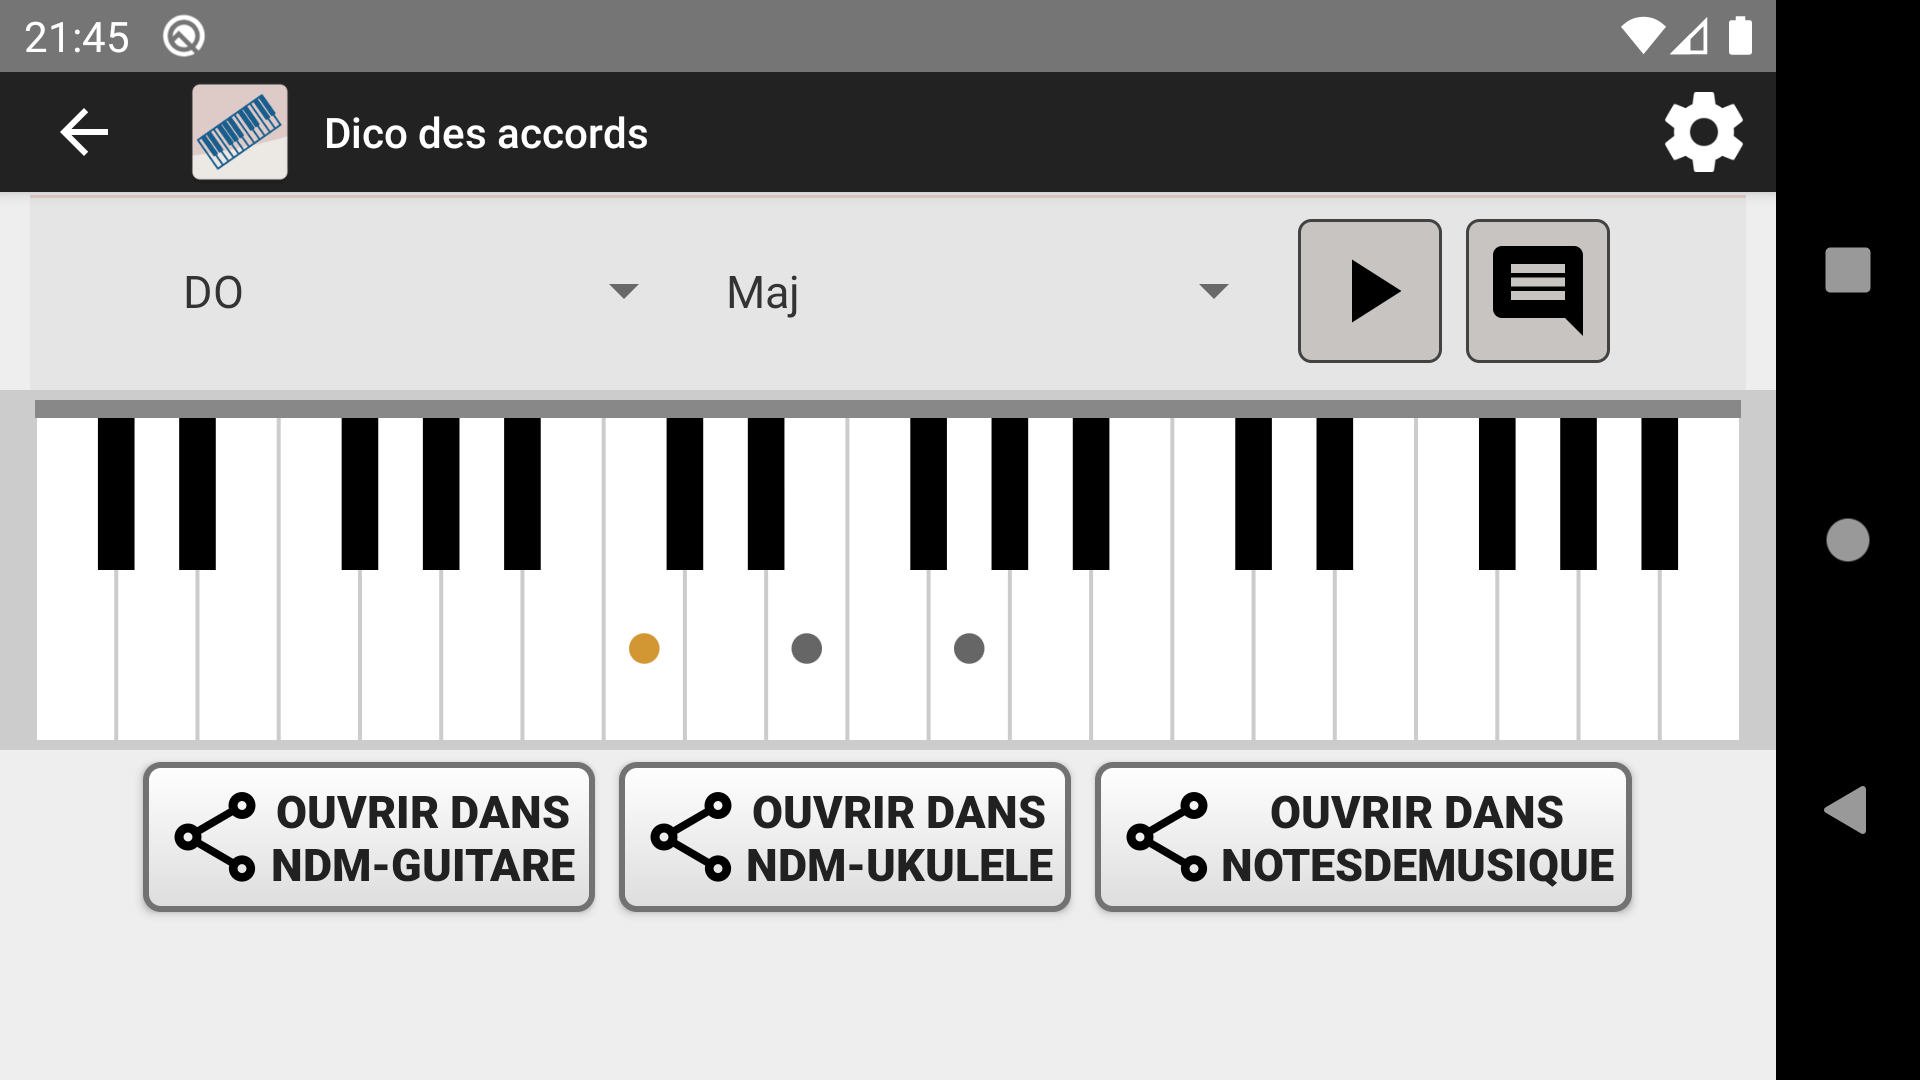 NDM-Piano - Dictionnaire des accords